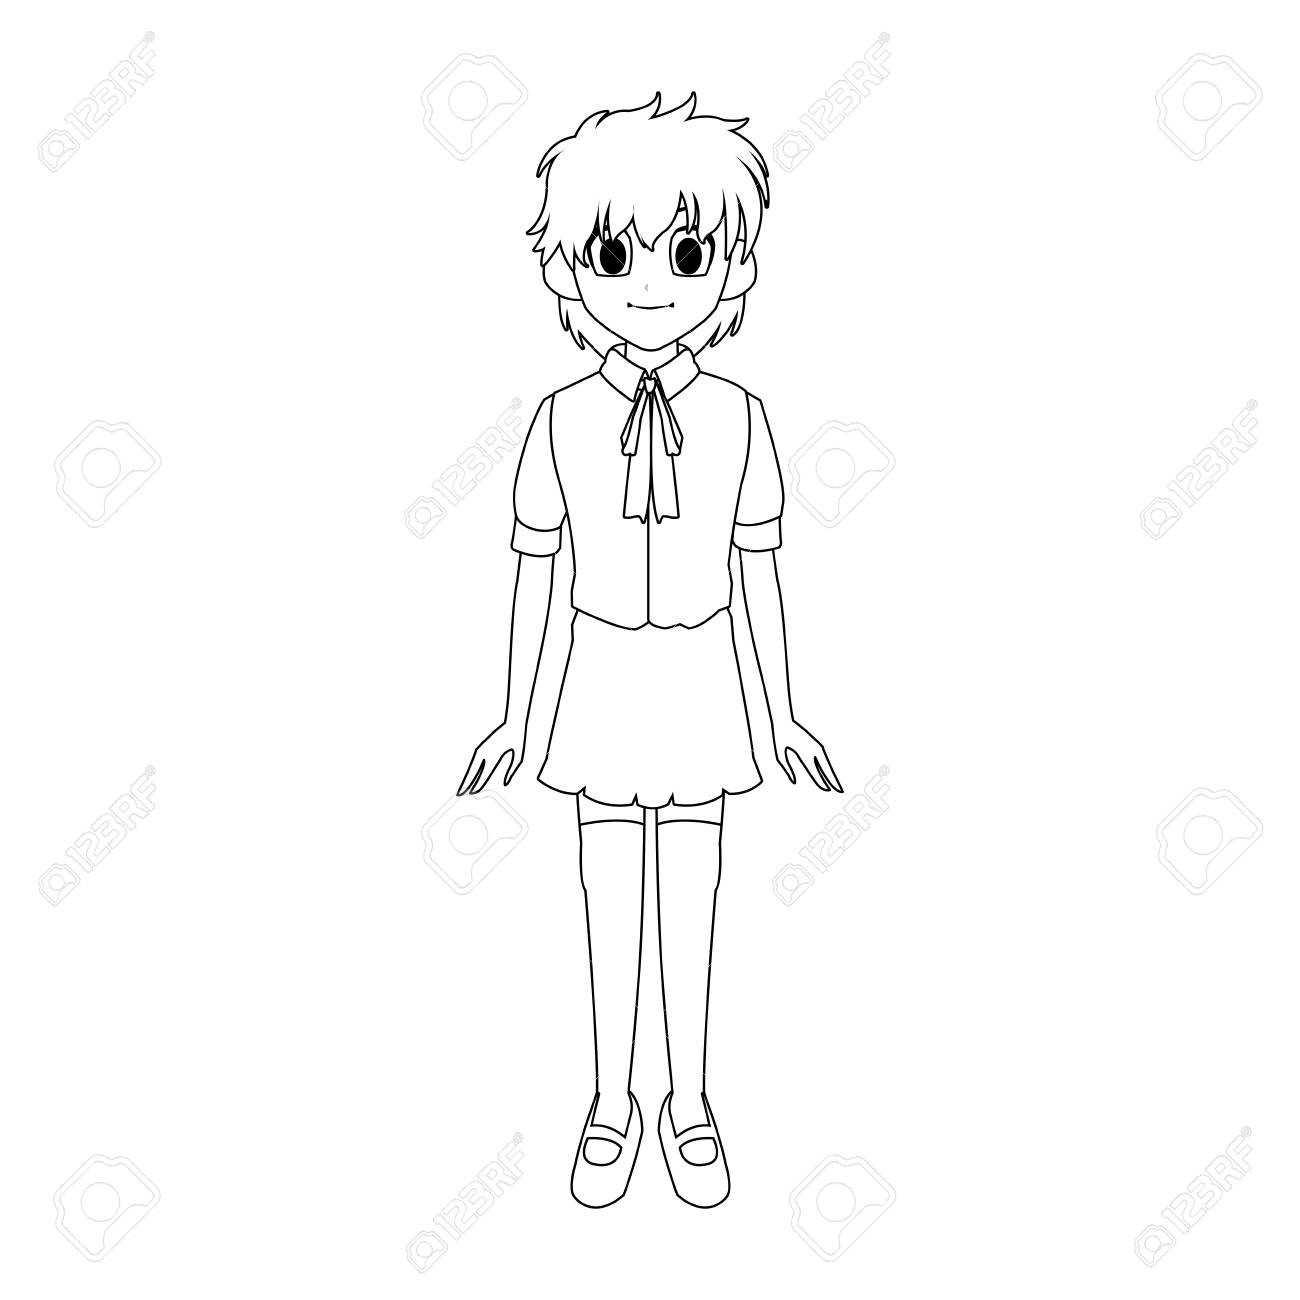 Anime Girl Wearing School Uniforms Icon Over White Background